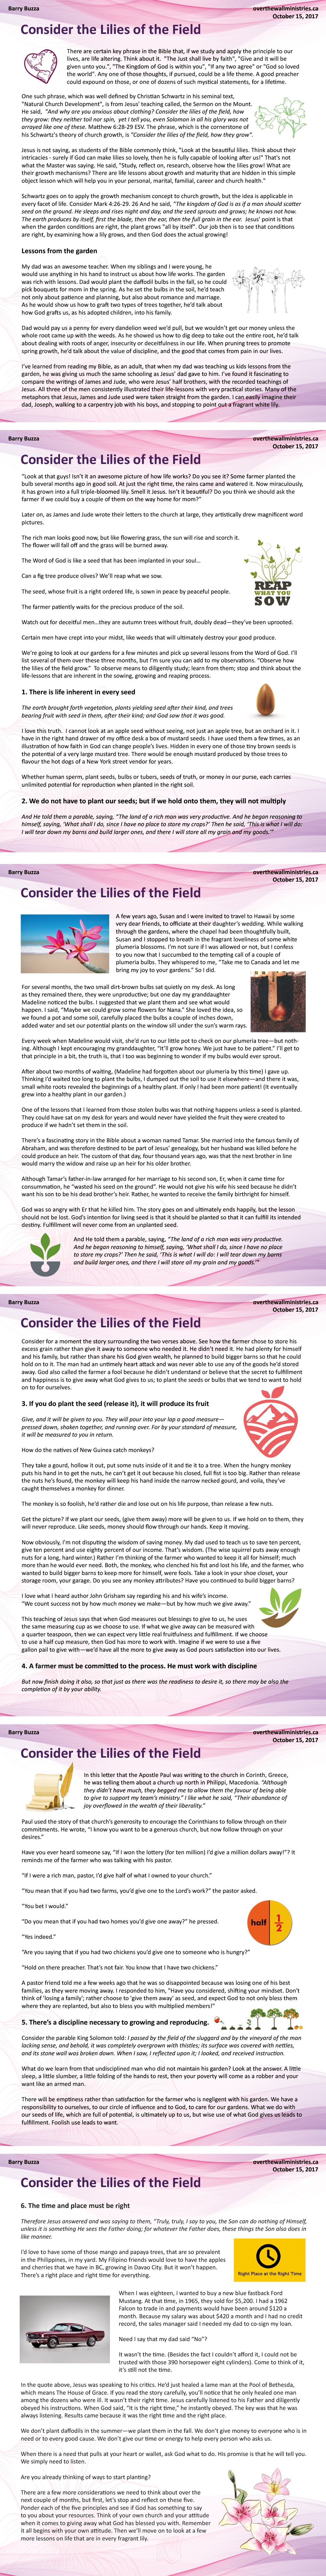 #8_consider the lilies of the field_ALLPAGES.jpg